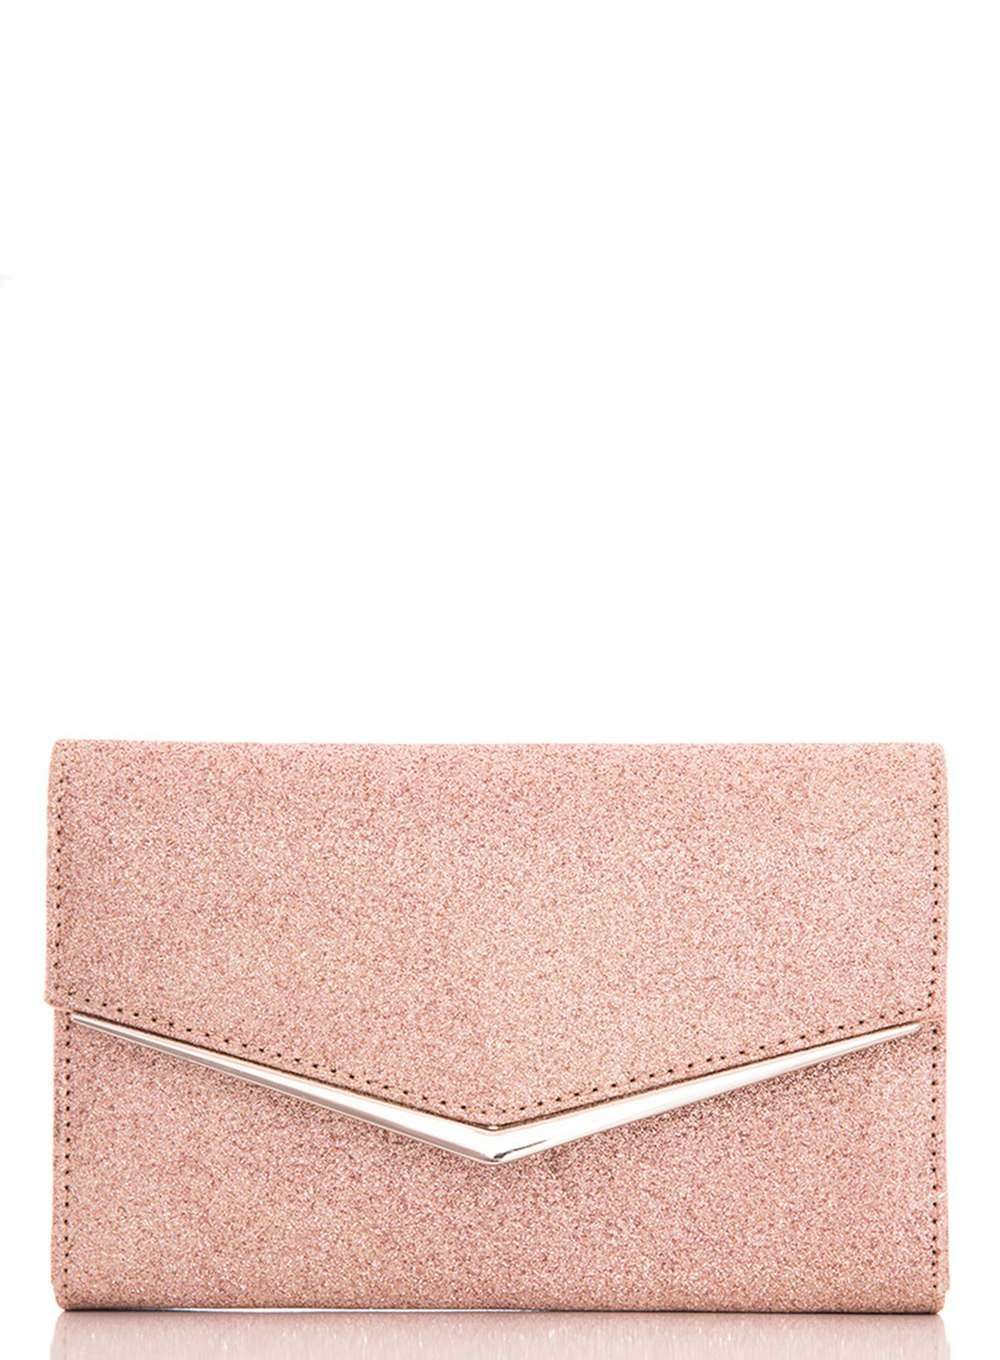 Womens  Quiz Rose Gold Glitter Clutch Bag- Rose Gold 6ac79de7b